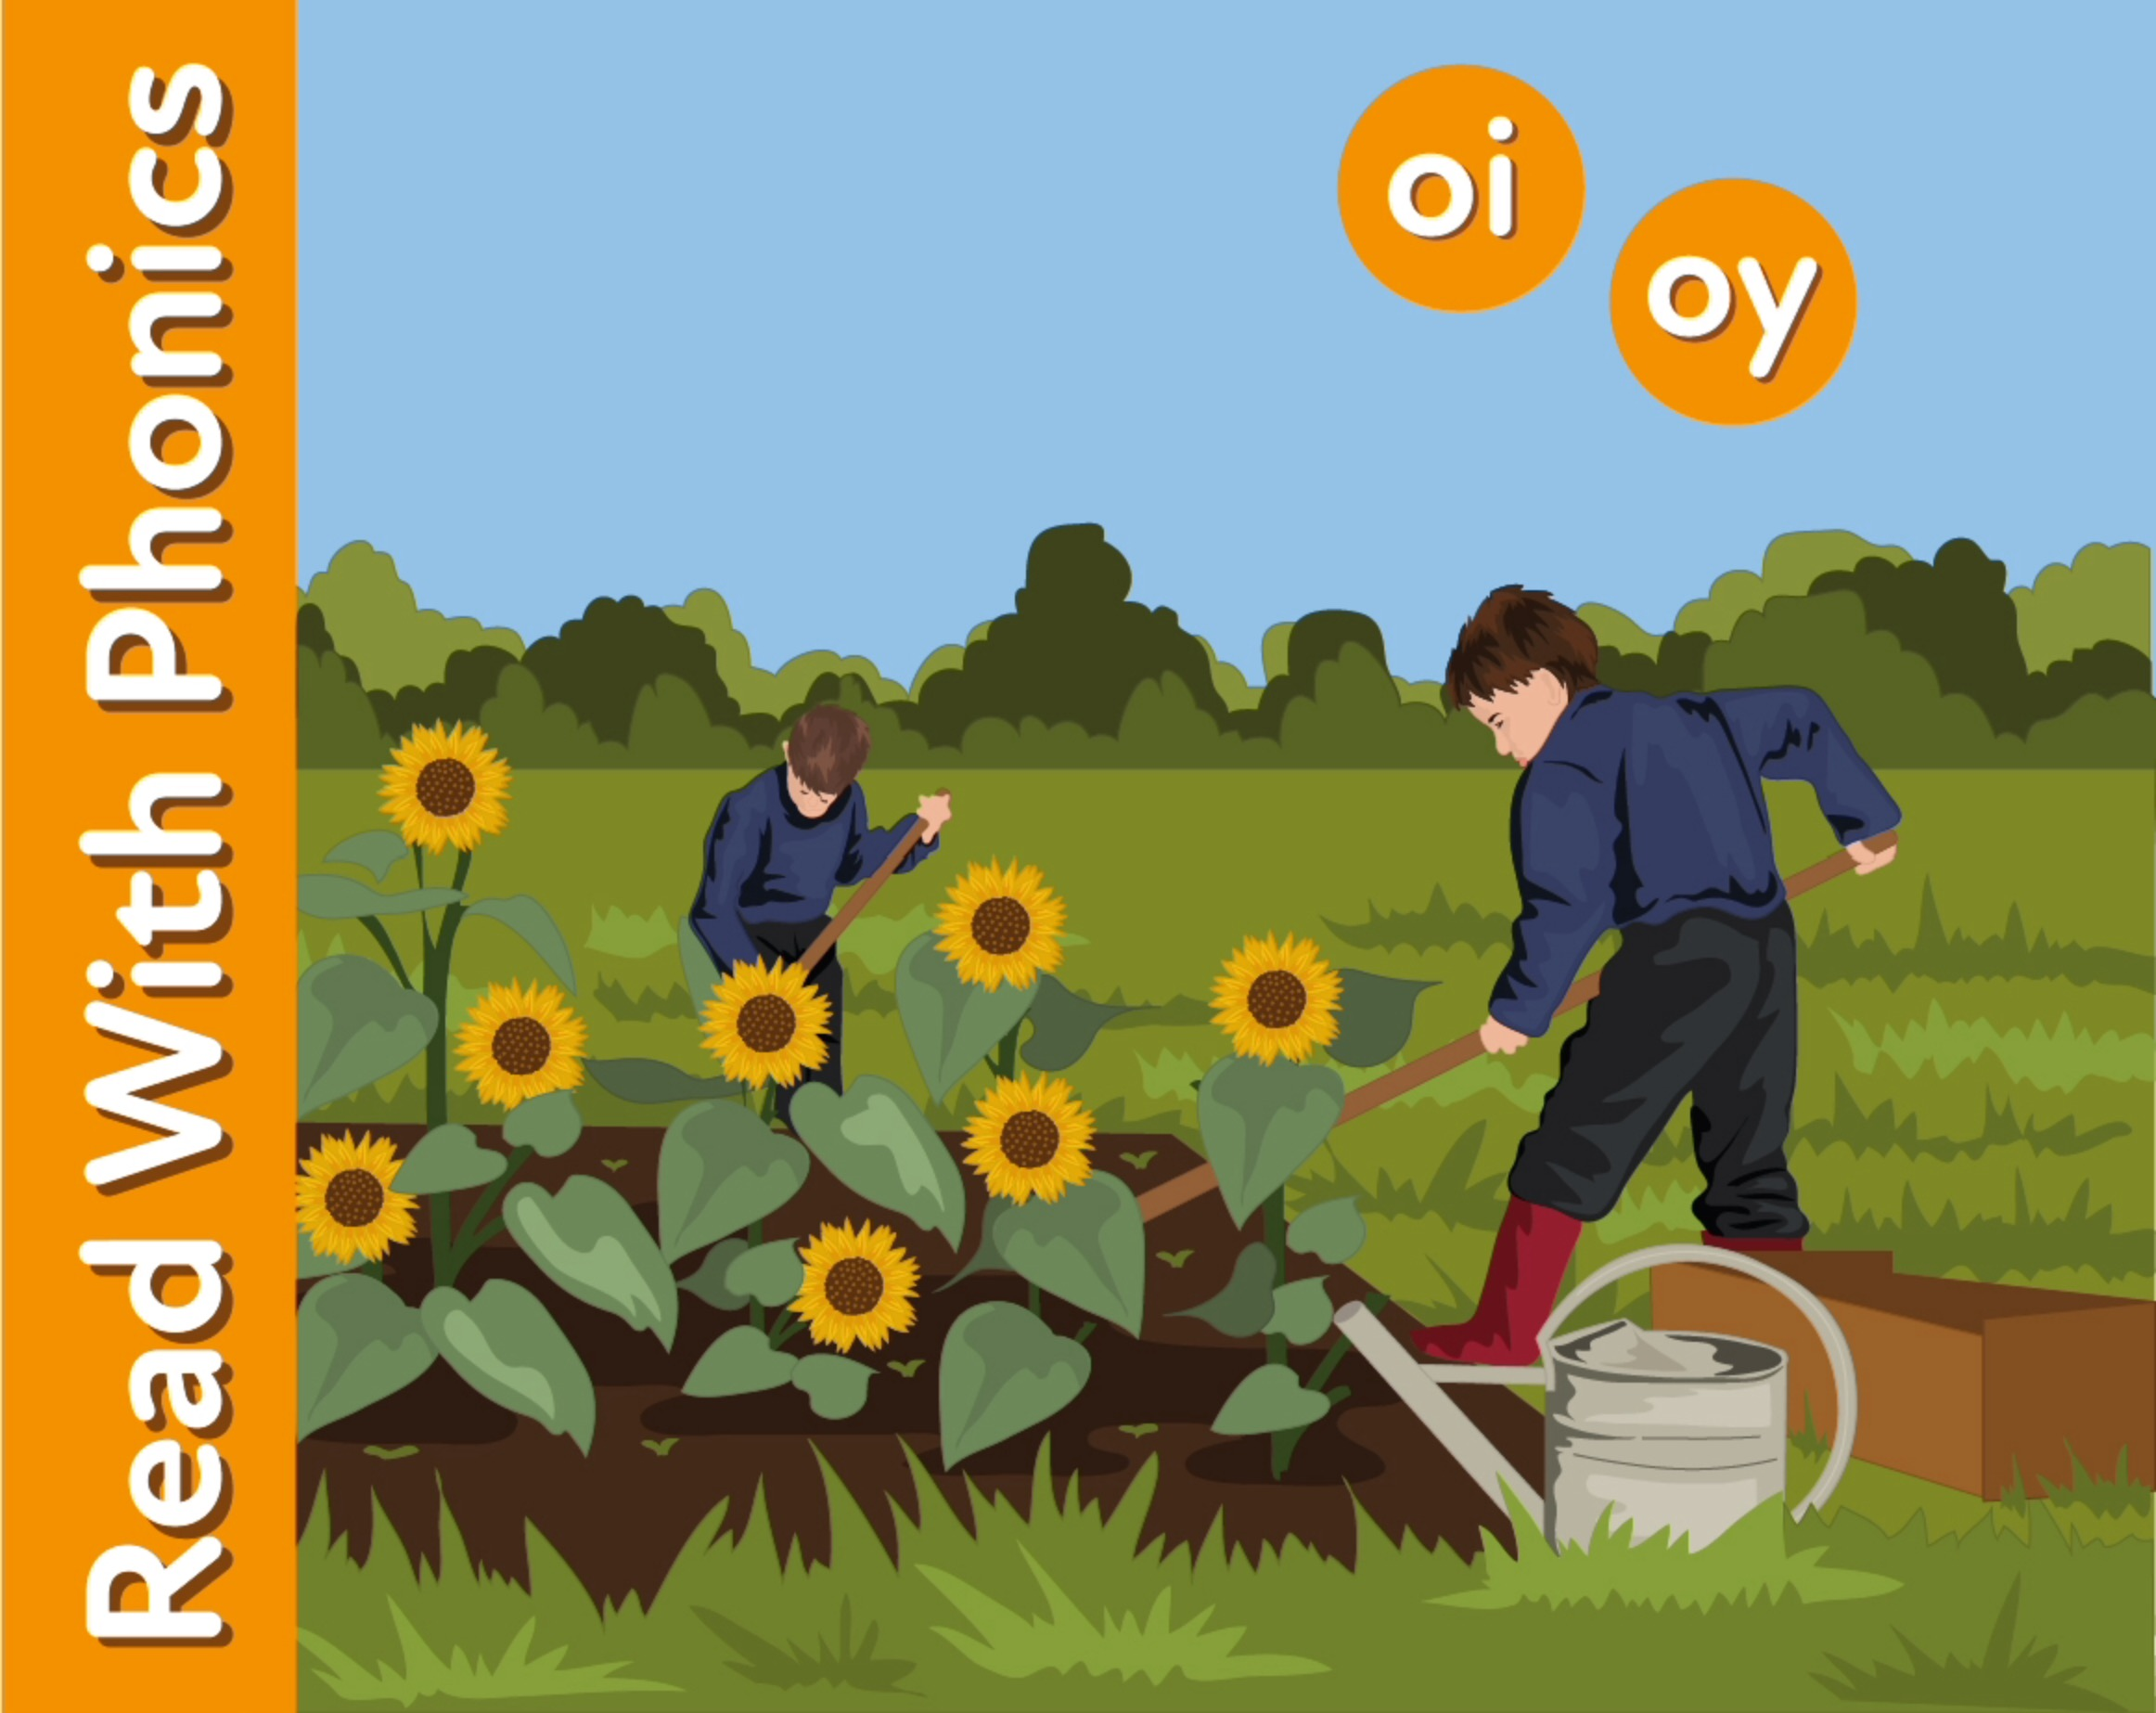 Learn The Phonic Sounds 'oi' and 'oy'